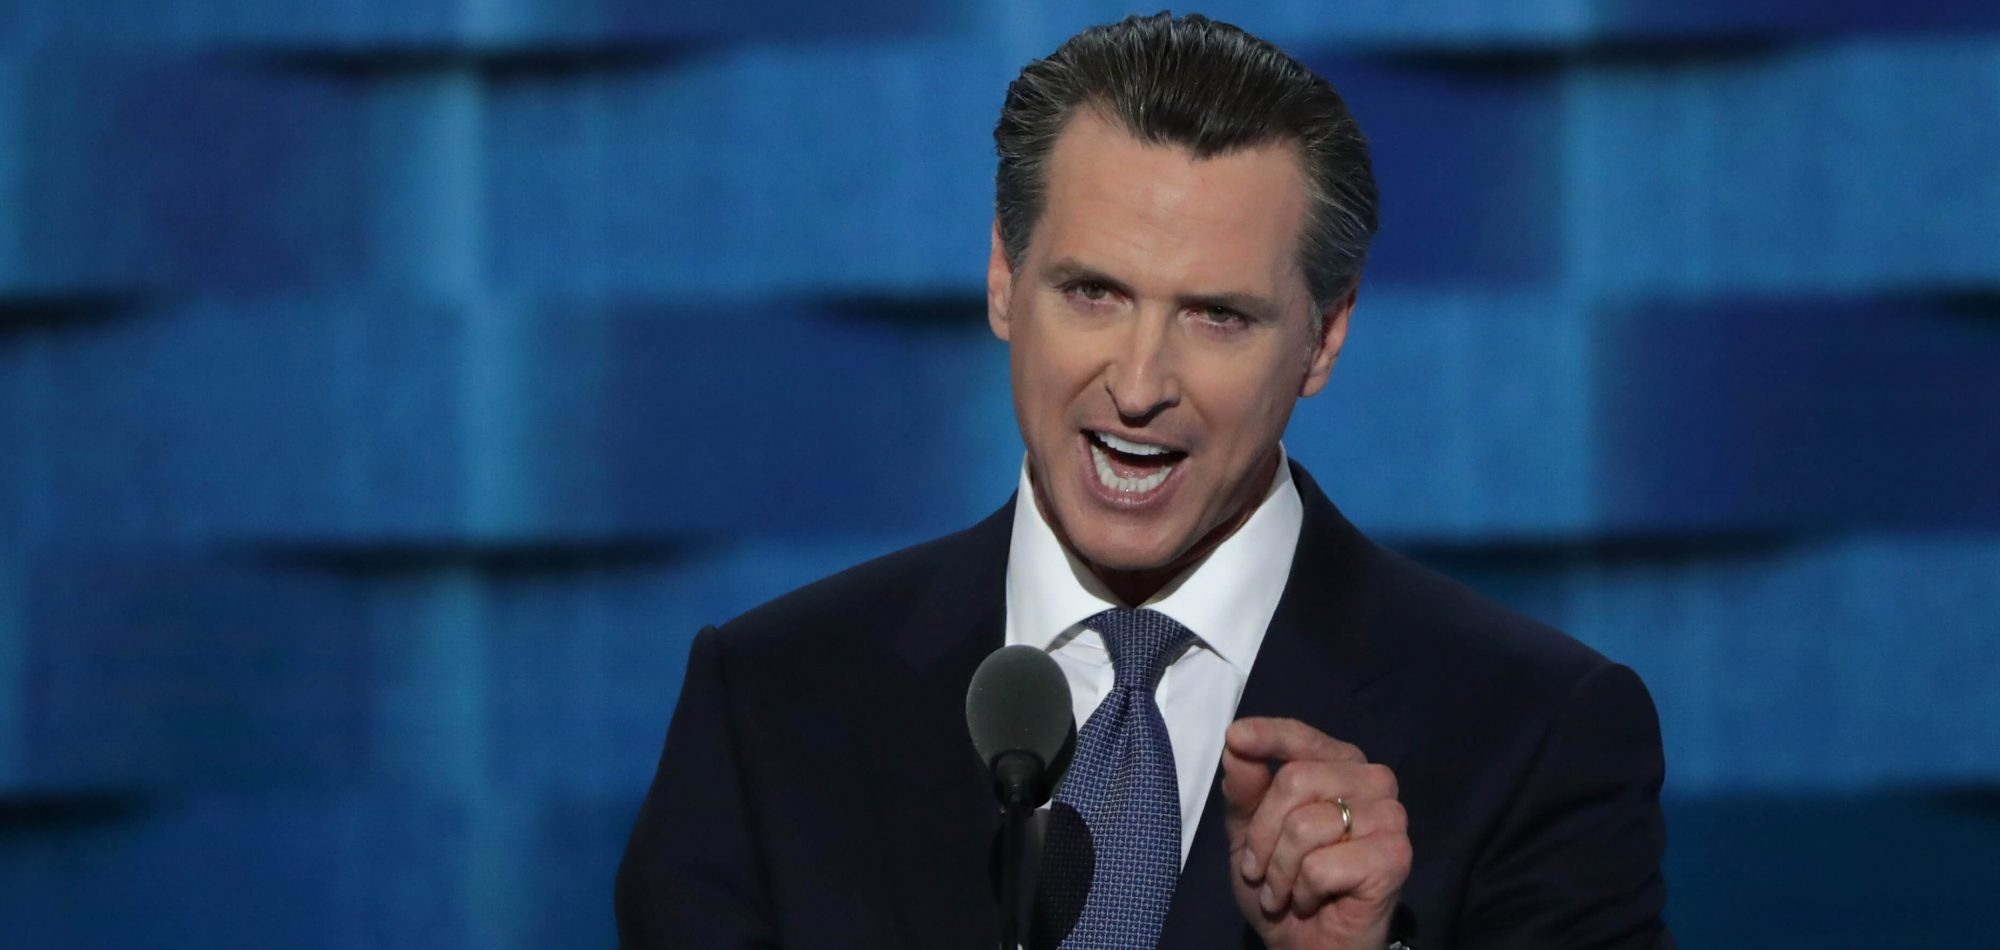 Guess Who CA Lt. Gov. Gavin Newsom Called a 'Prick' in an Email to His Sister?